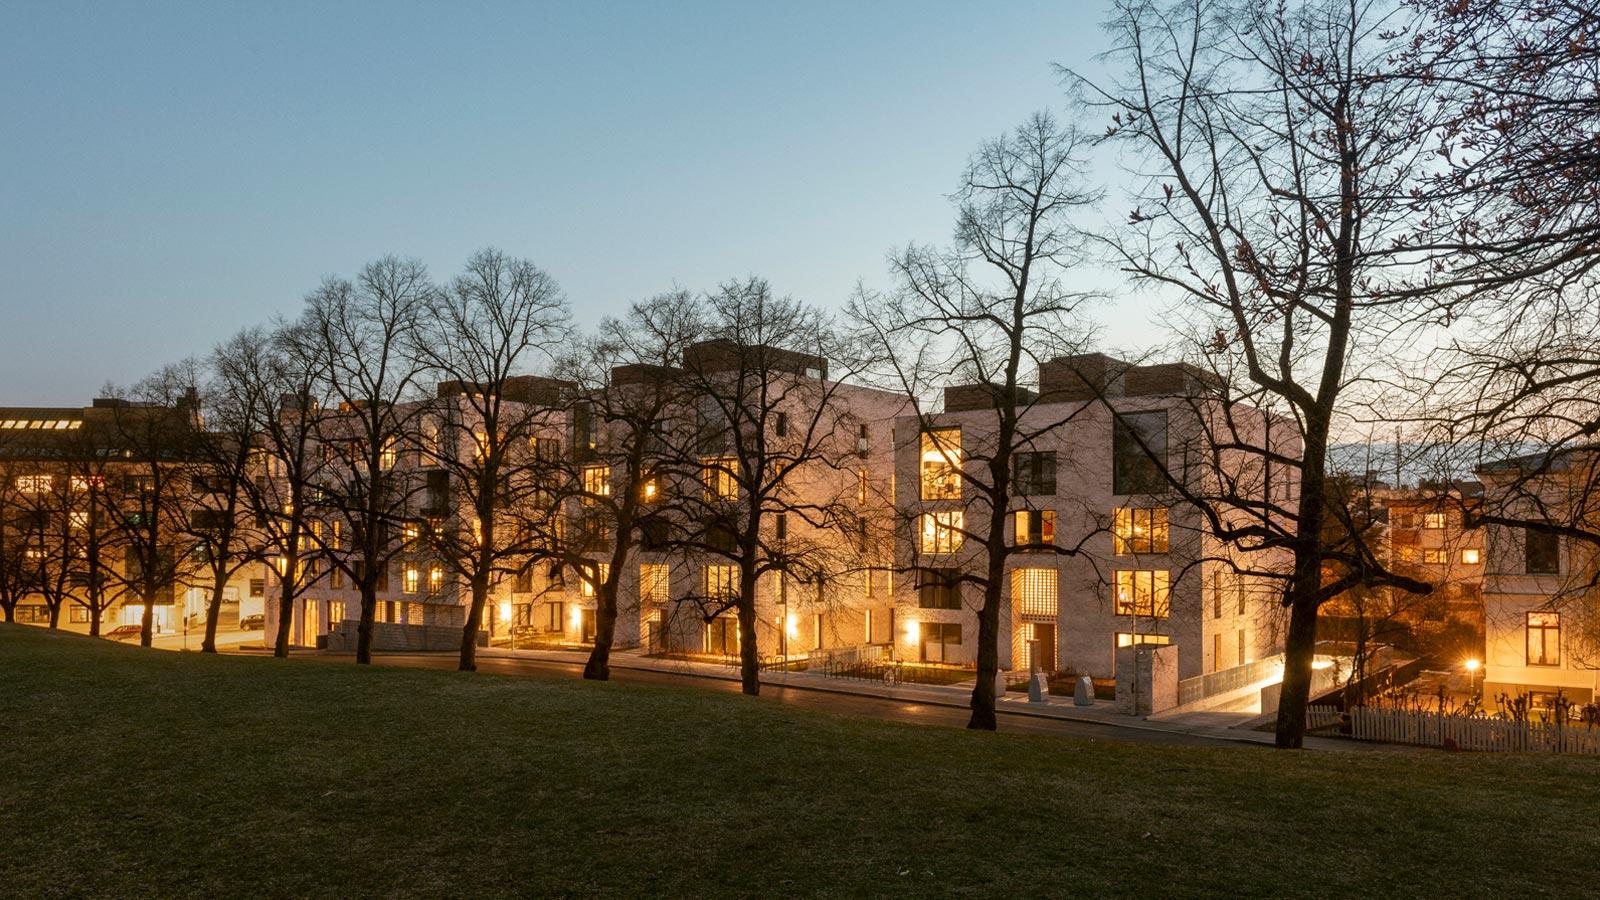 Pilestredet Apartments exterior photograph in the evening